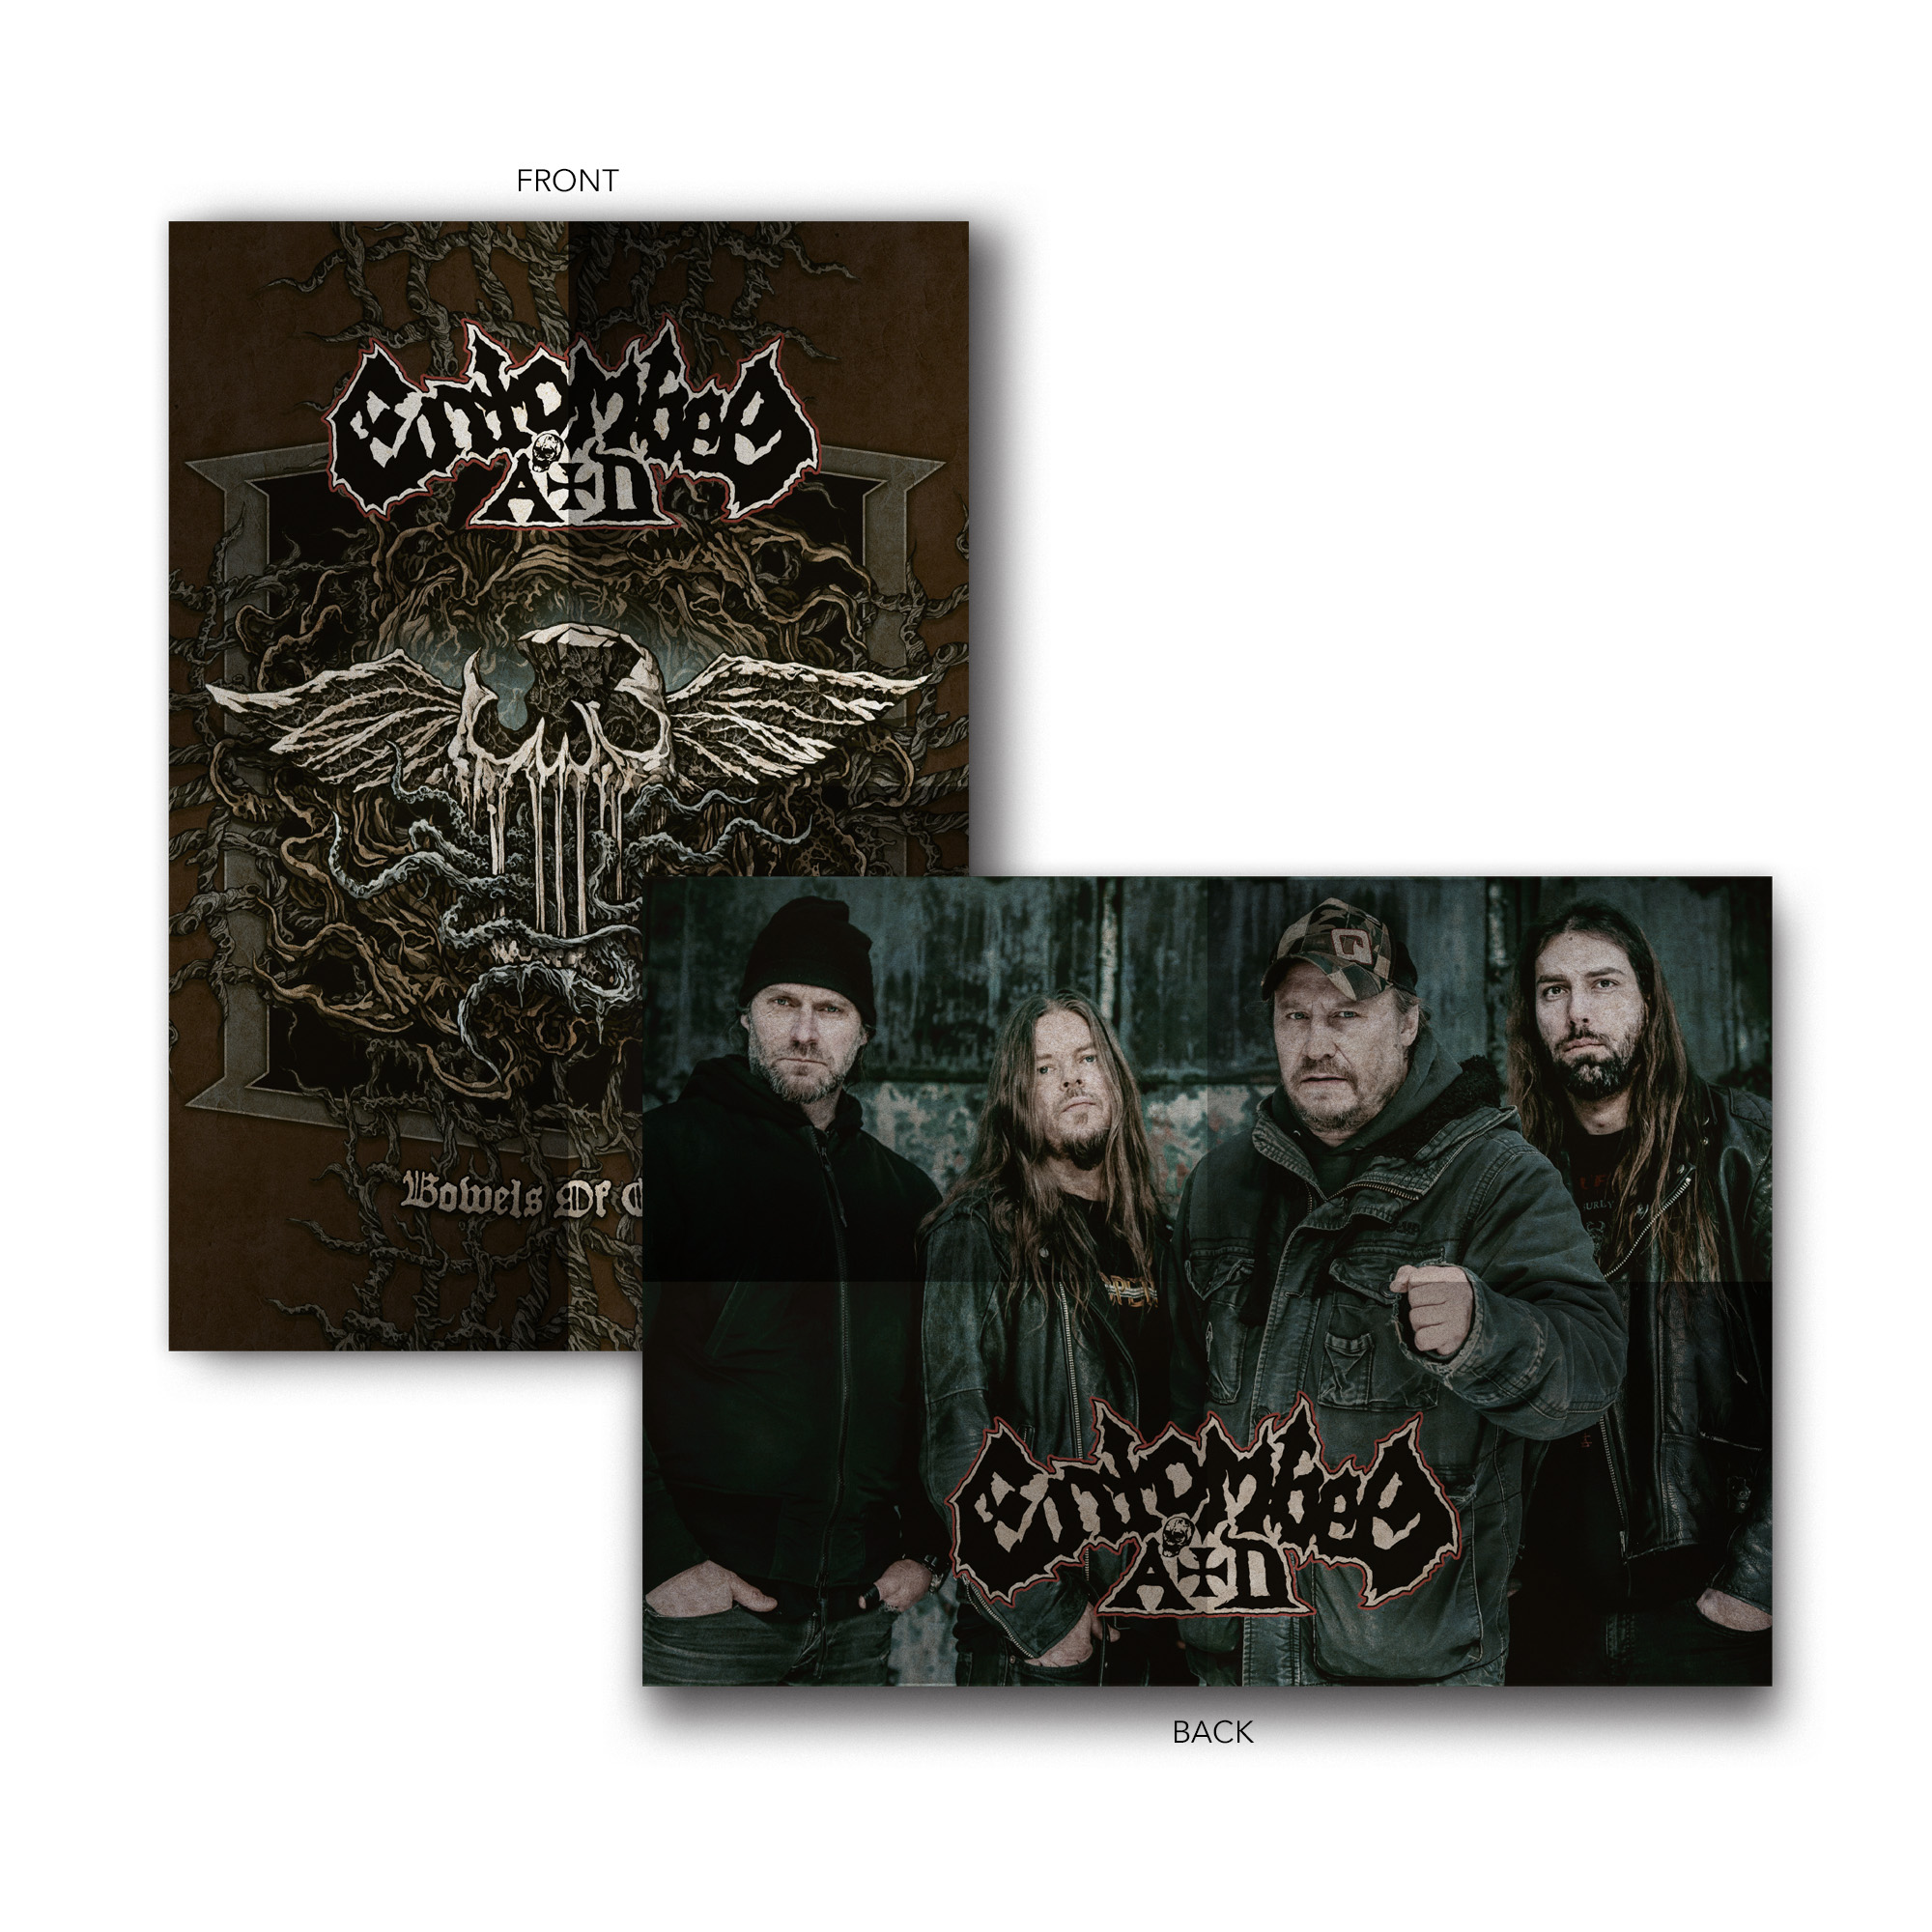 Entombed A.D. - Bowels of Earth Limited Edition CD + Clear LP + Fit For A King T-Shirt